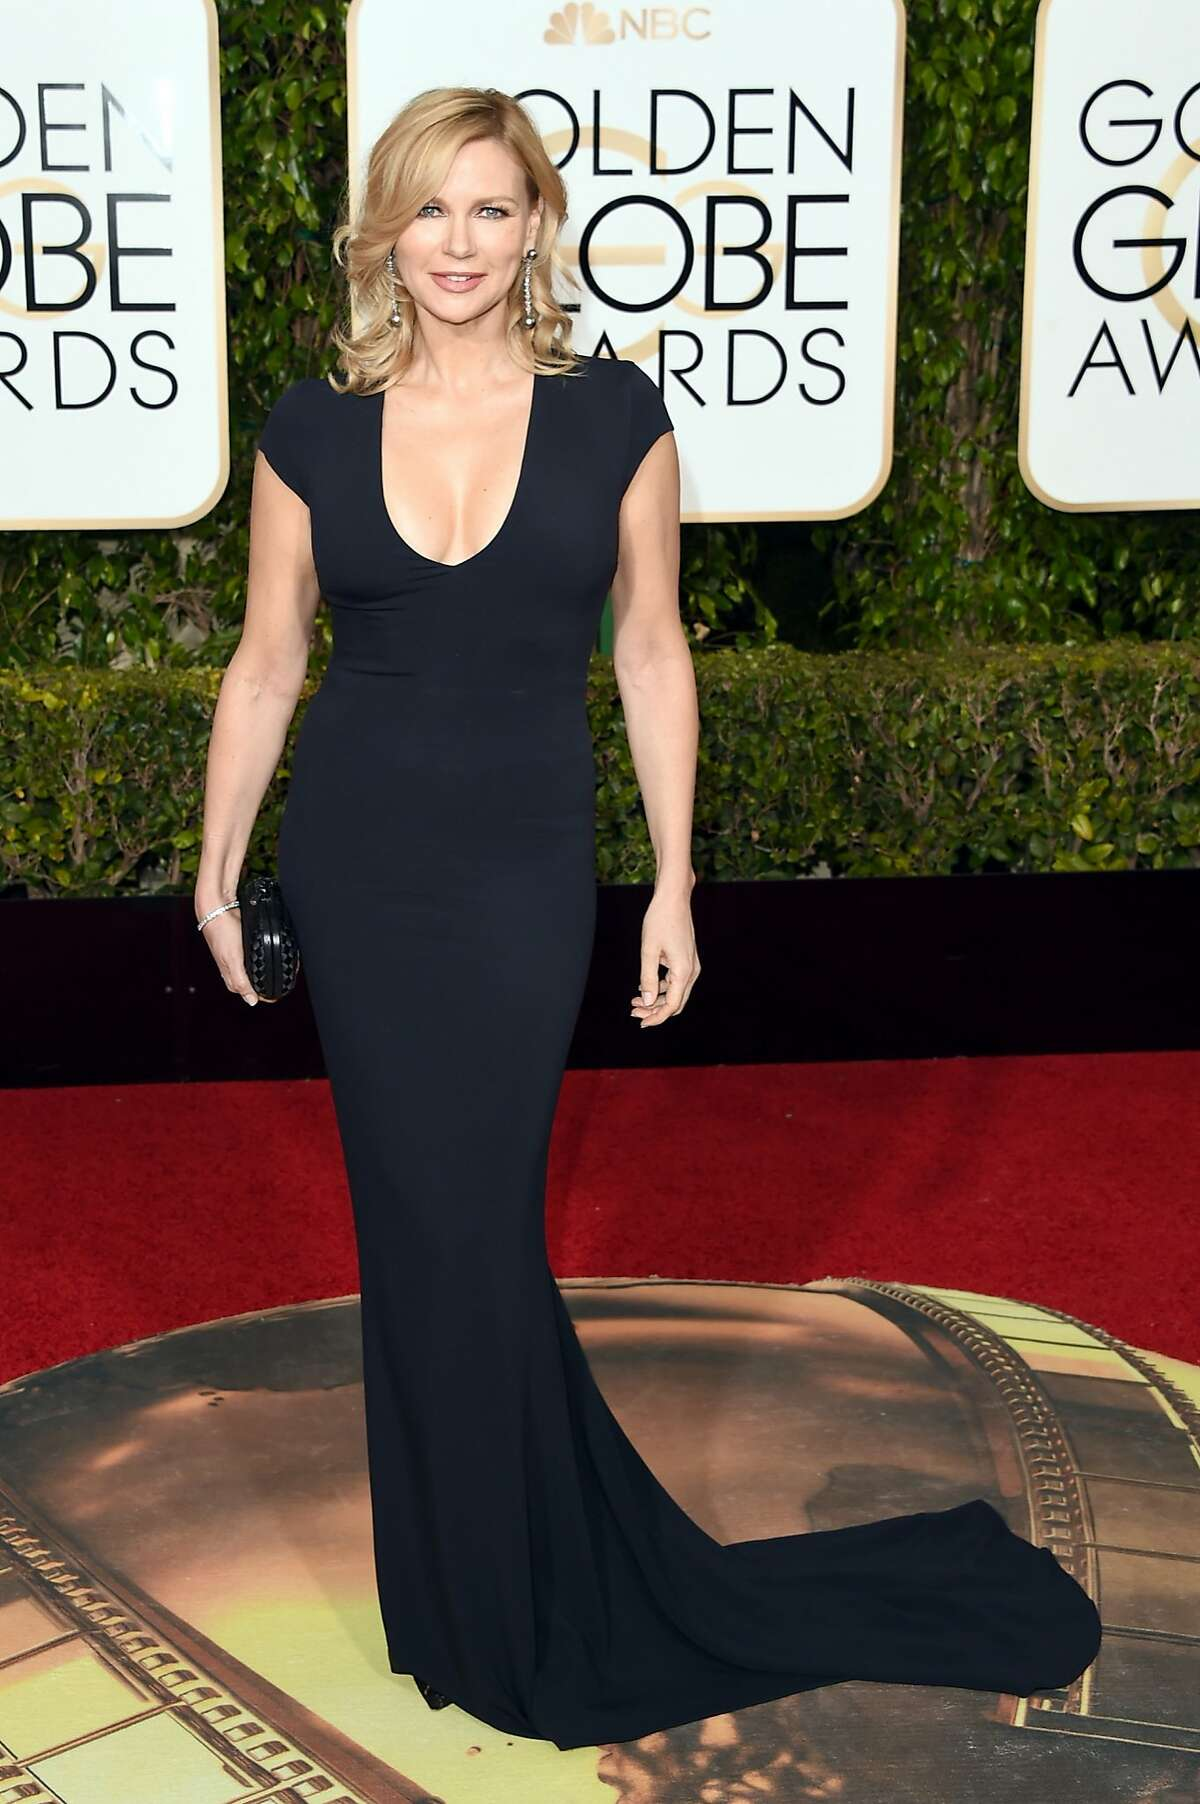 Actress Veronica Ferres attends the 73rd Annual Golden Globe Awards held at the Beverly Hilton Hotel on January 10, 2016 in Beverly Hills, California.